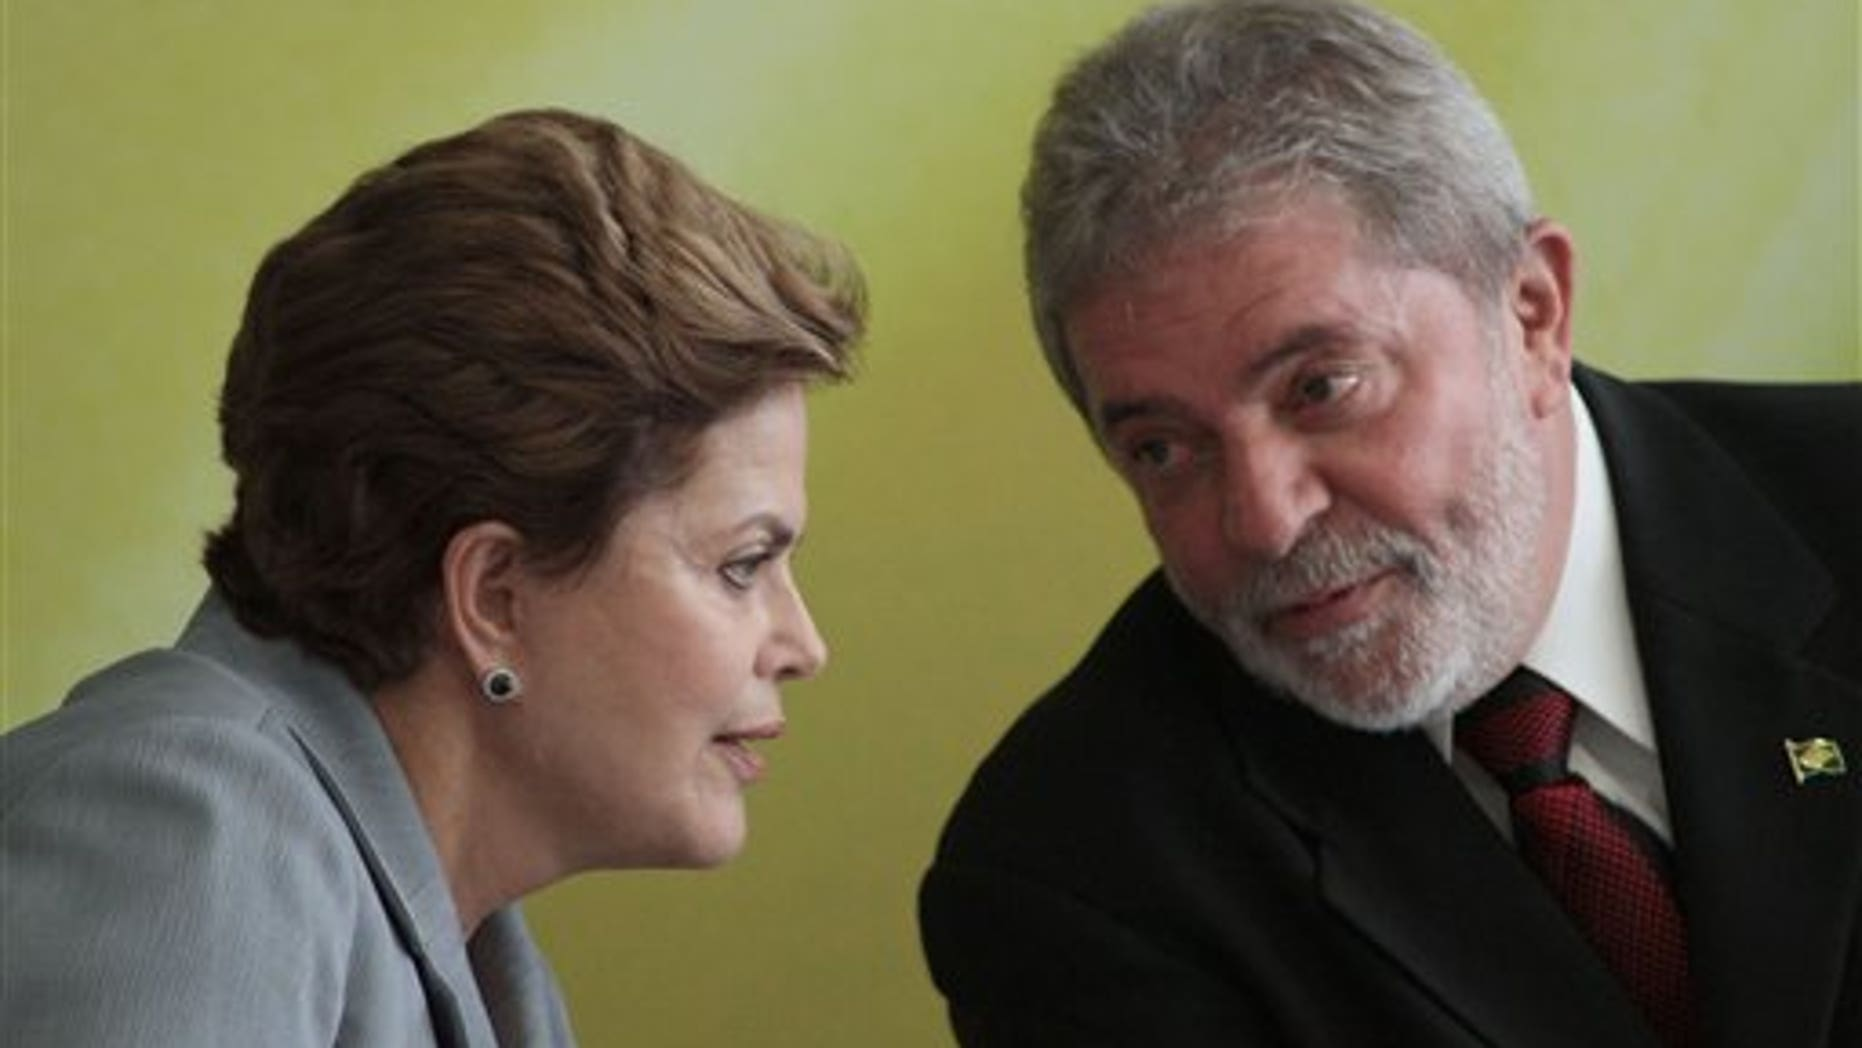 Brazil's President-elect Dilma Rousseff talks with President Luiz Inacio Lula da Silva during an event where Lula da Silva spoke of his eight-year administration at the presidential palace in Brasilia, Brazil, Wednesday Dec. 15, 2010. (AP Photo/Eraldo Peres)